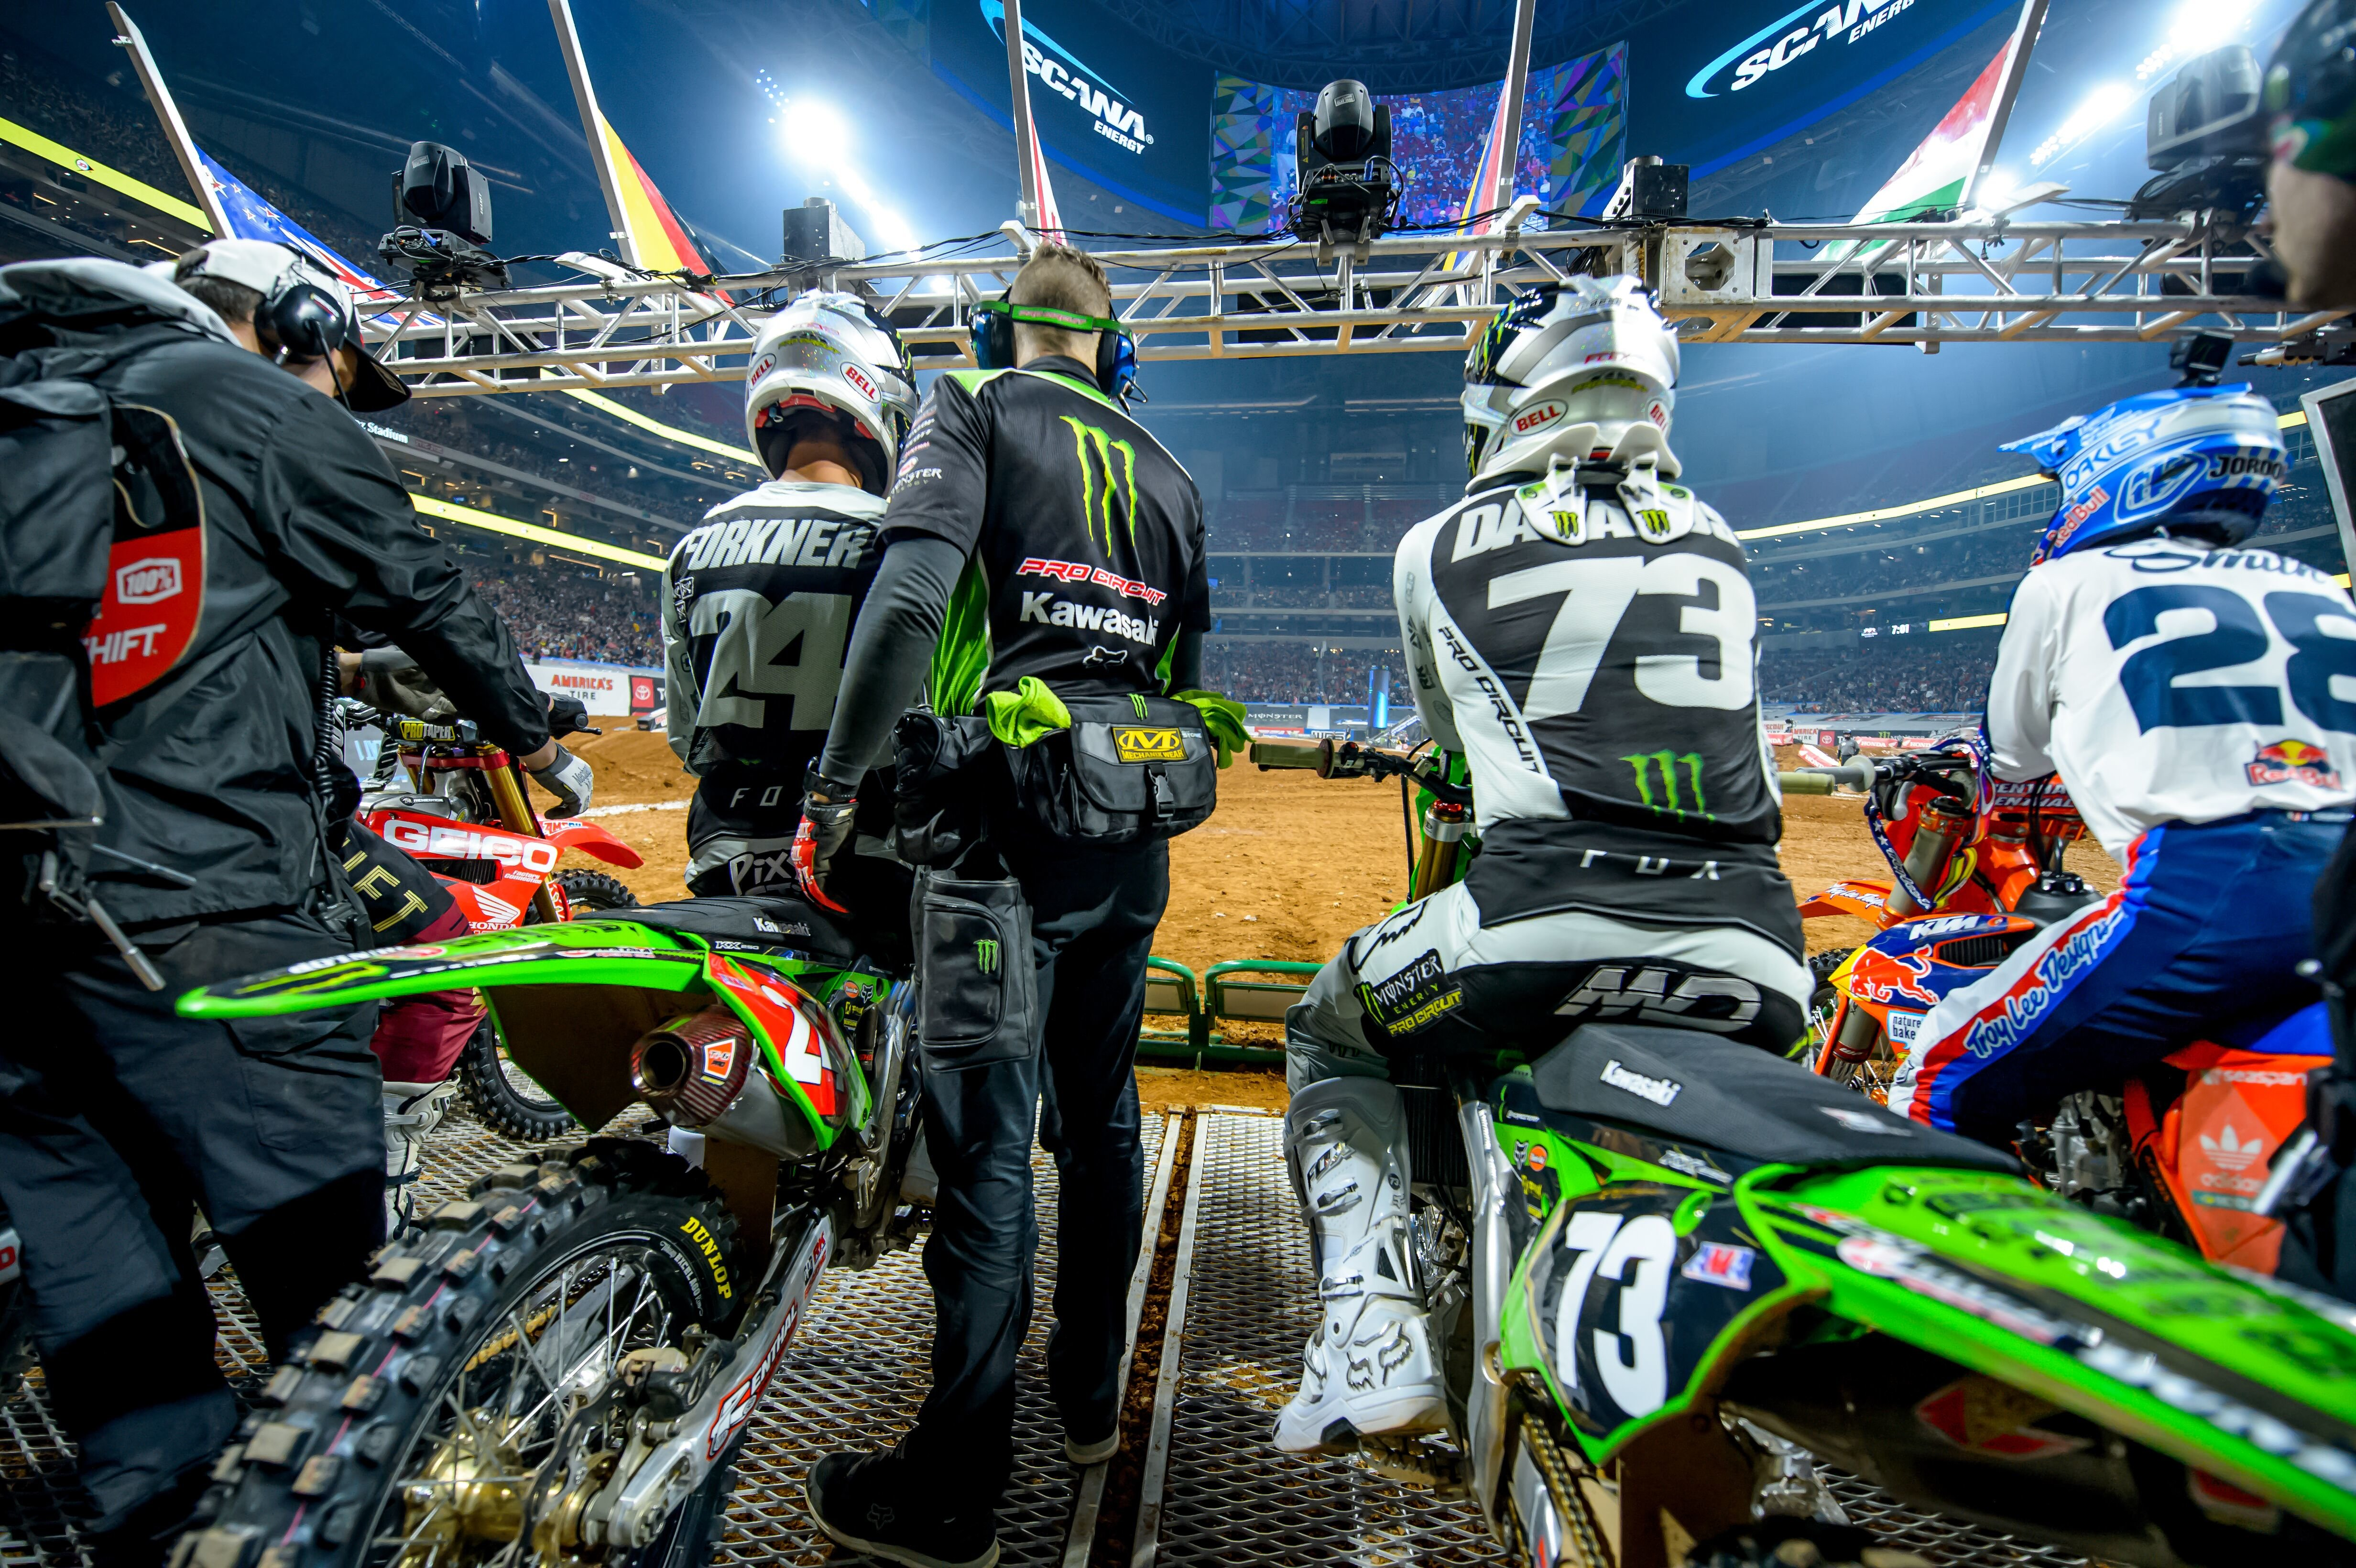 Monster Energy Pro Circuit Kawasaki Determined To Keep Streak Alive in Daytona